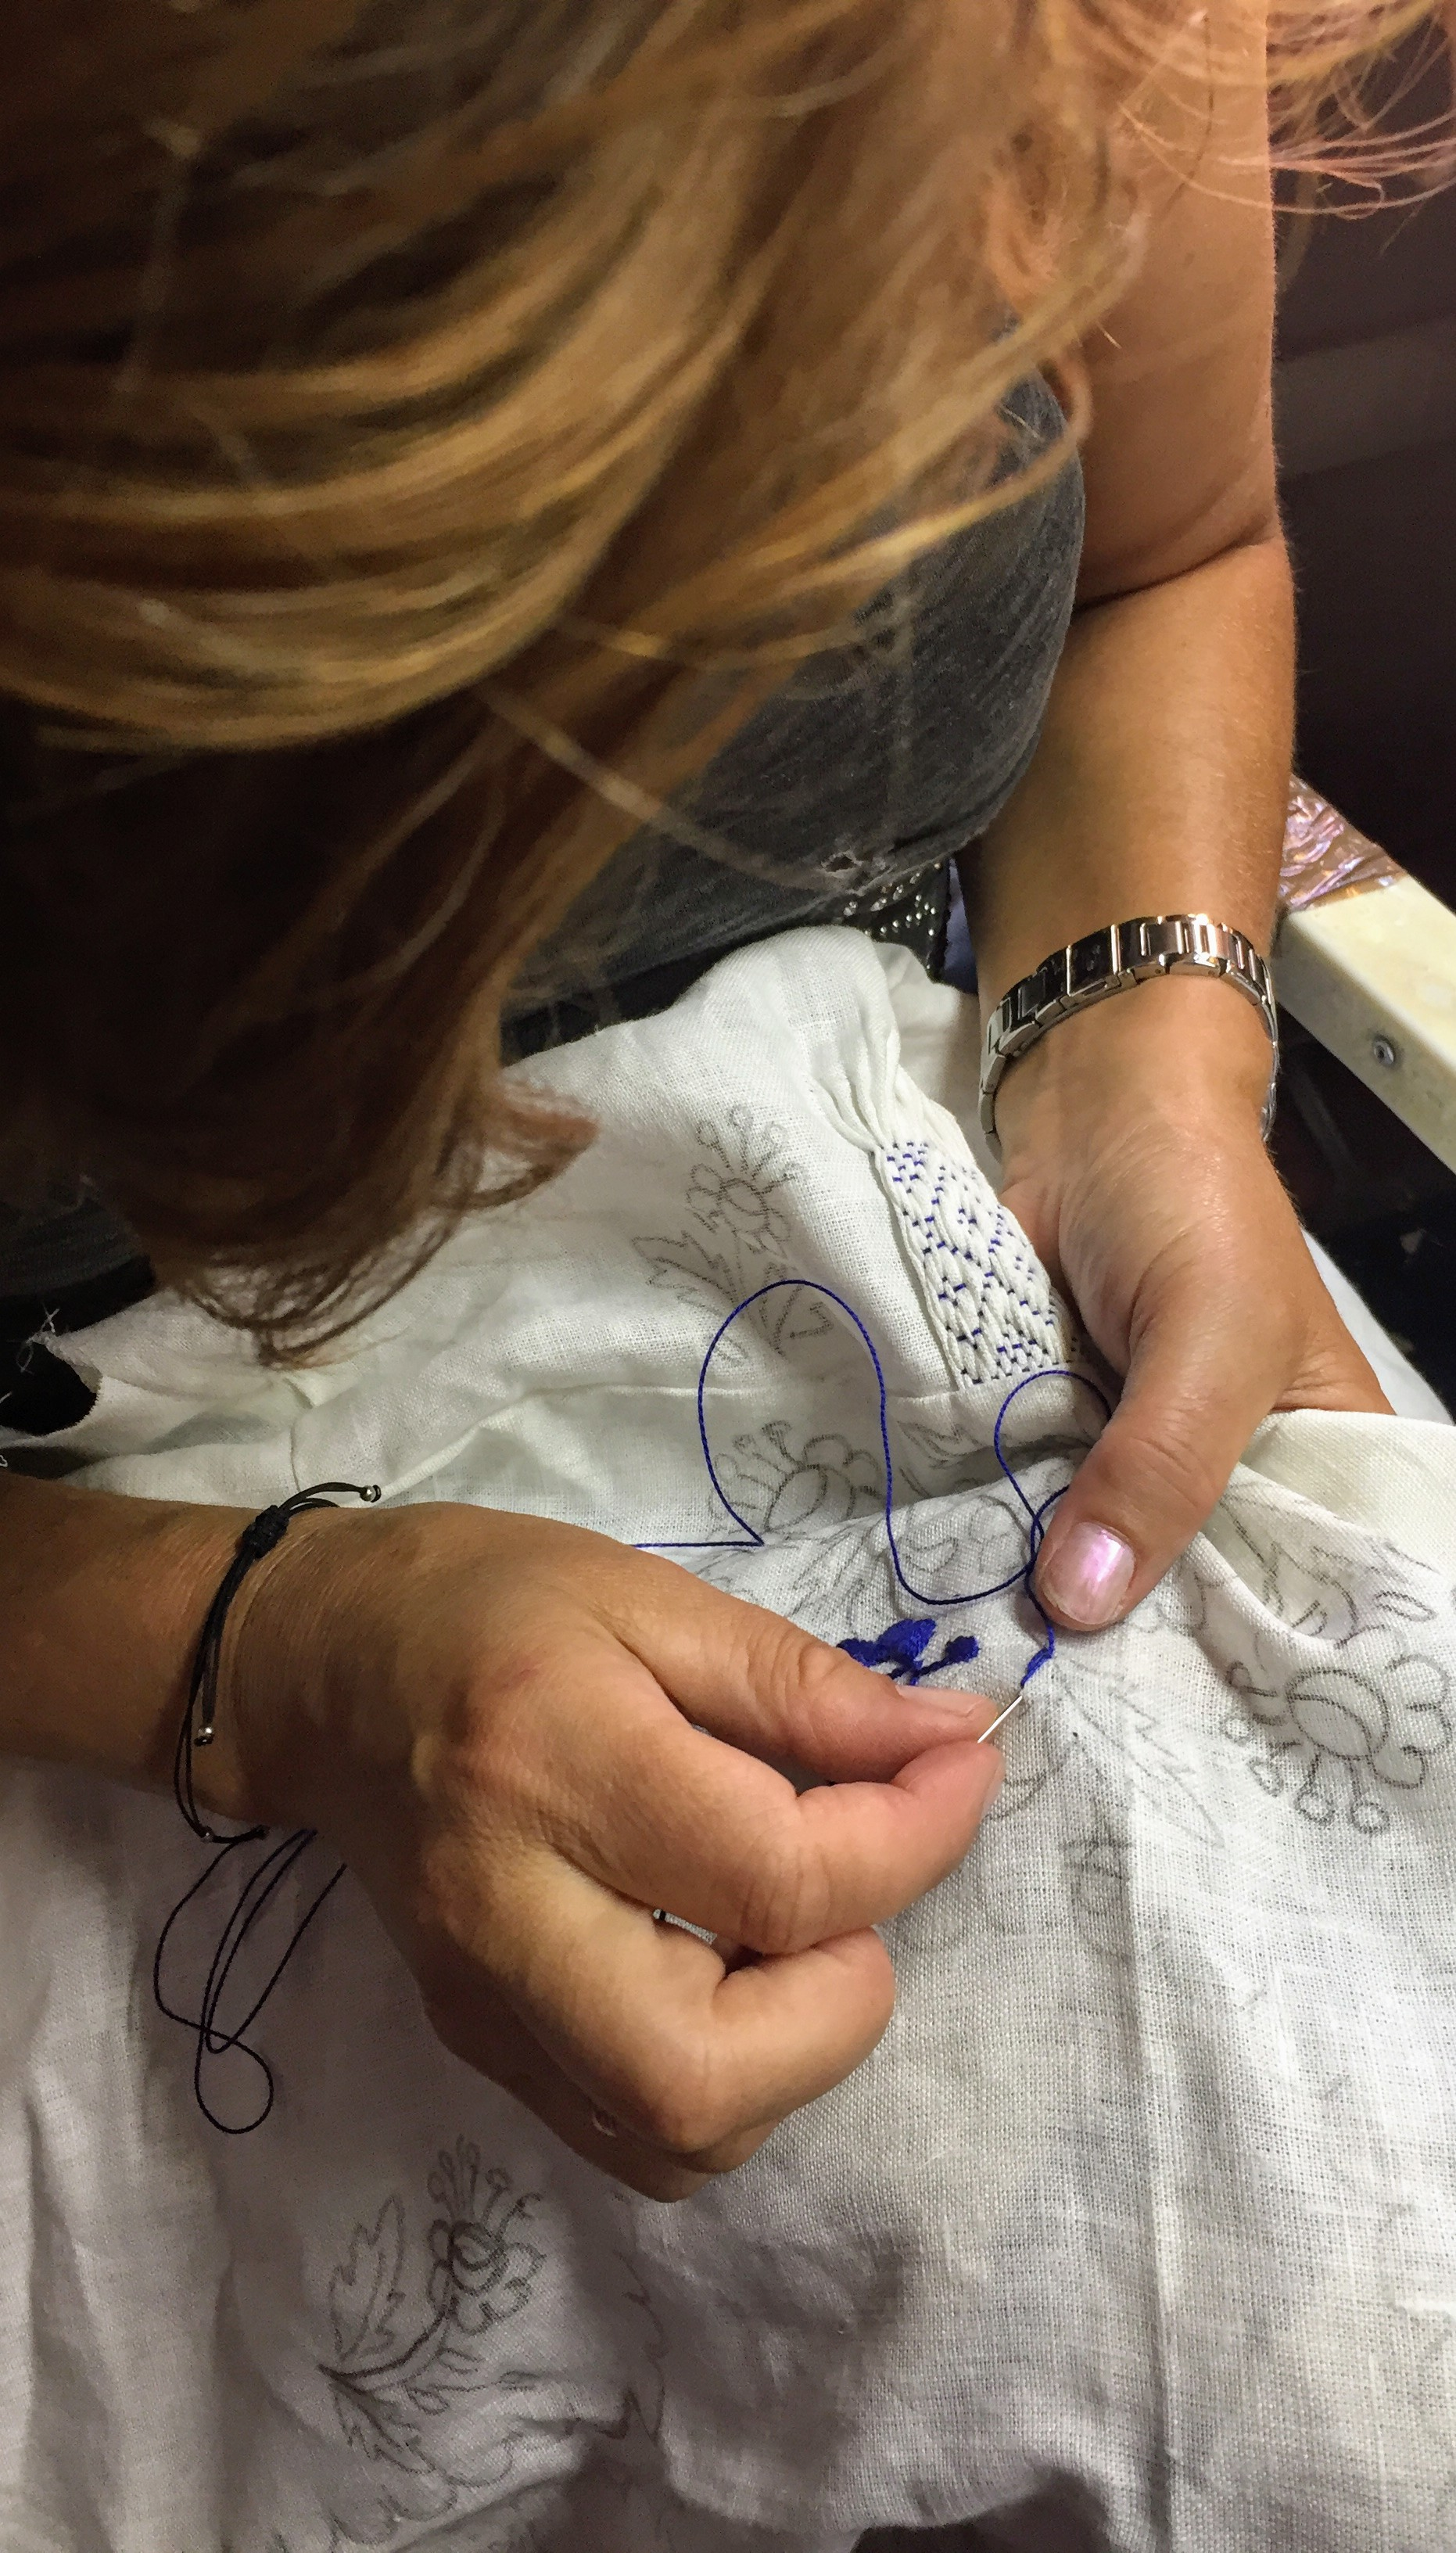 Embroiderer at work on a traditional blouse near Viana do Castelo.